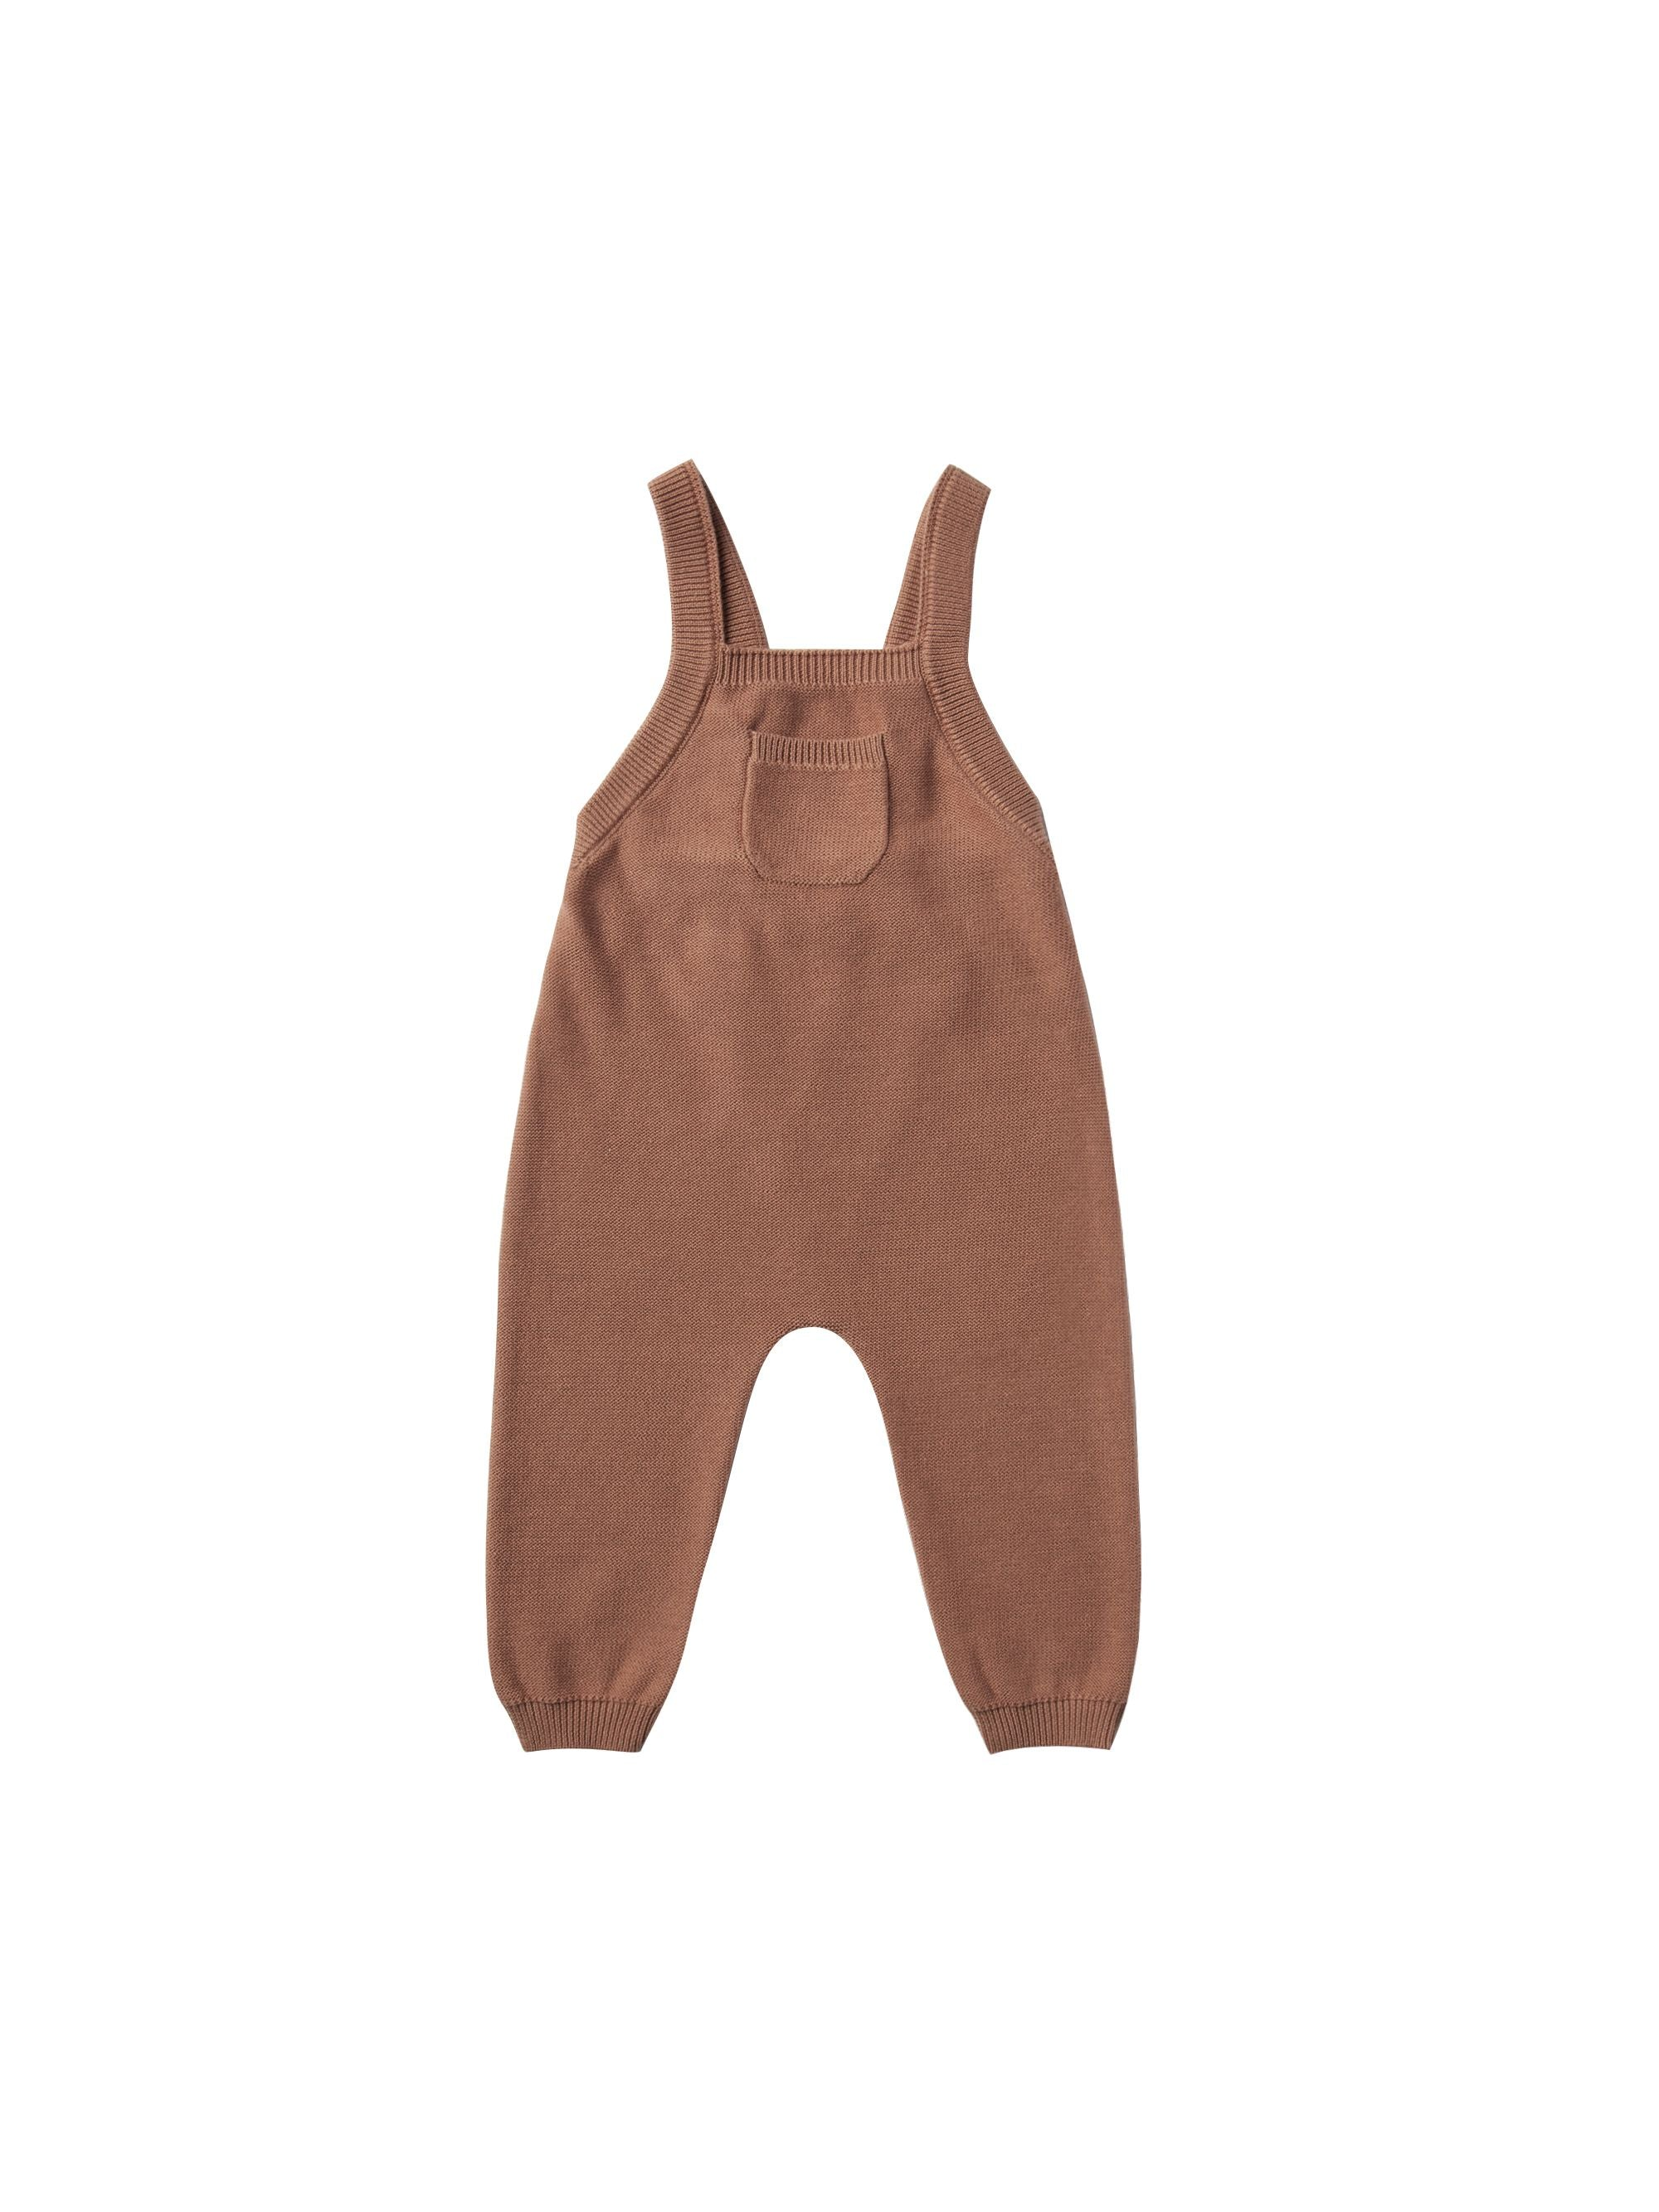 Quincy Mae Knit Overall-Assorted Colors